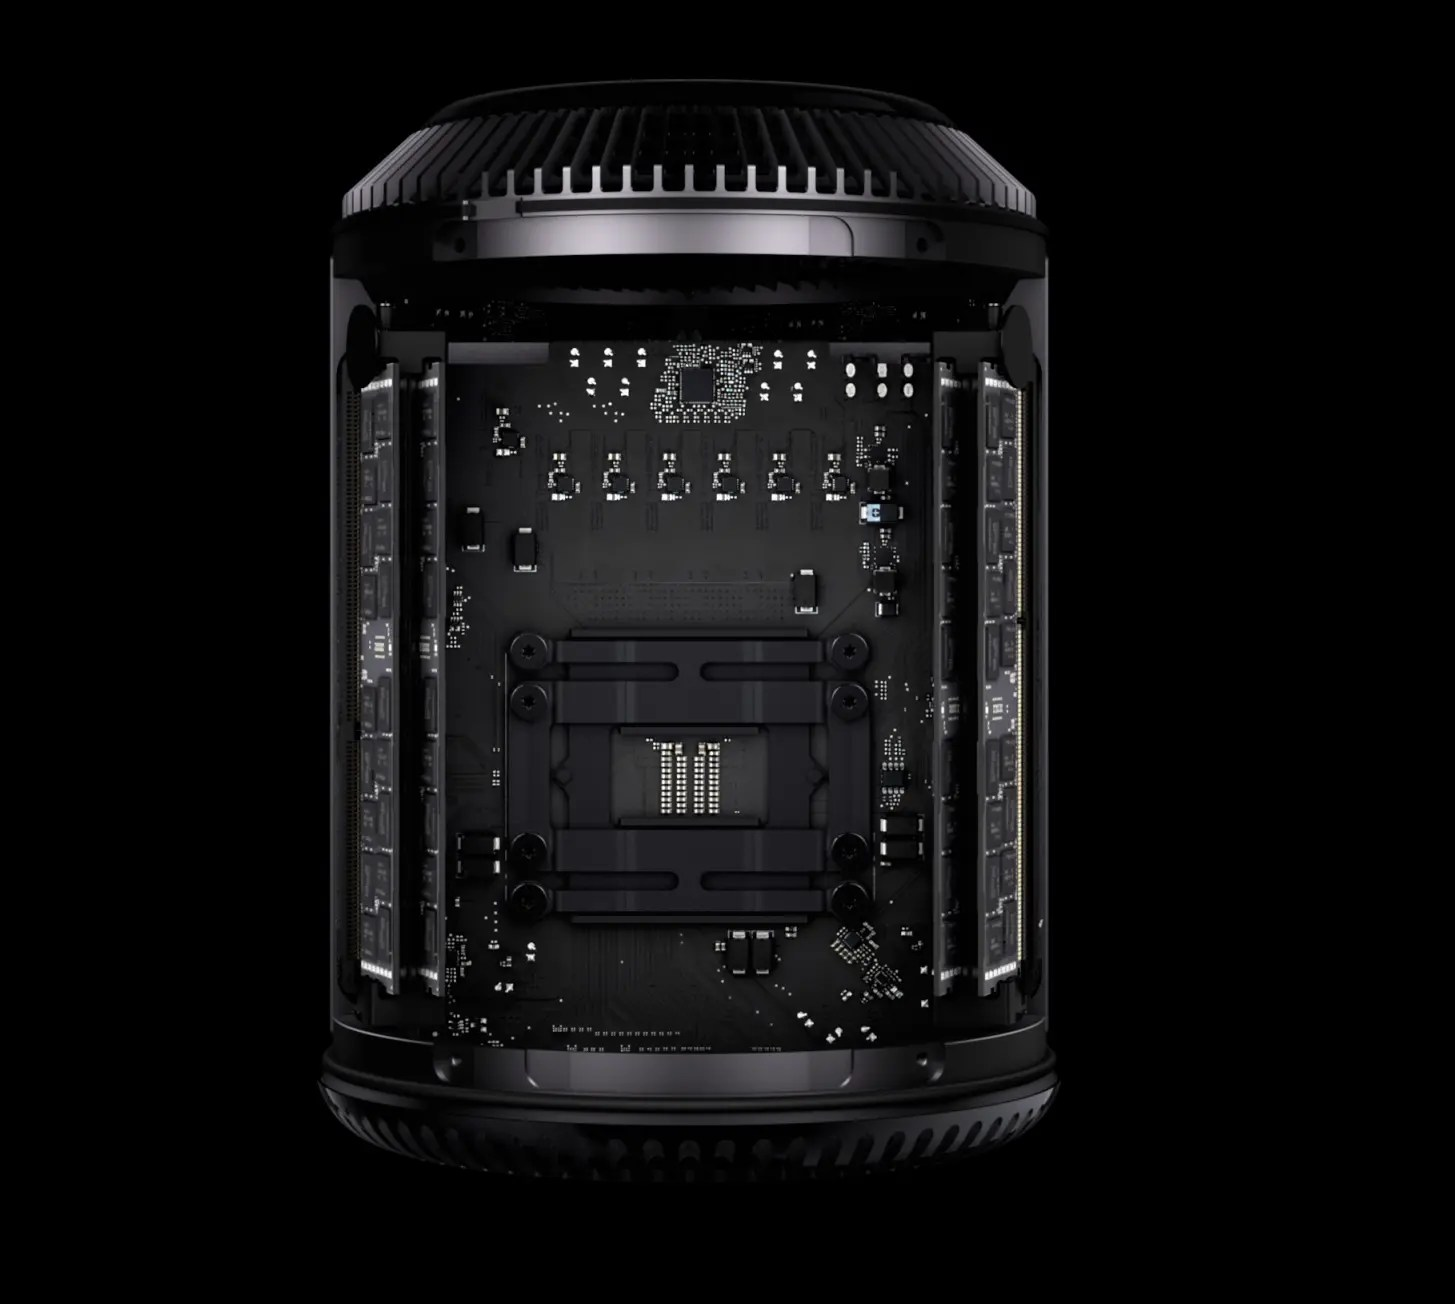 3d Wallpapers For Spring Apple Announces New Mac Pro And Macbook Air At Wwdc 2013